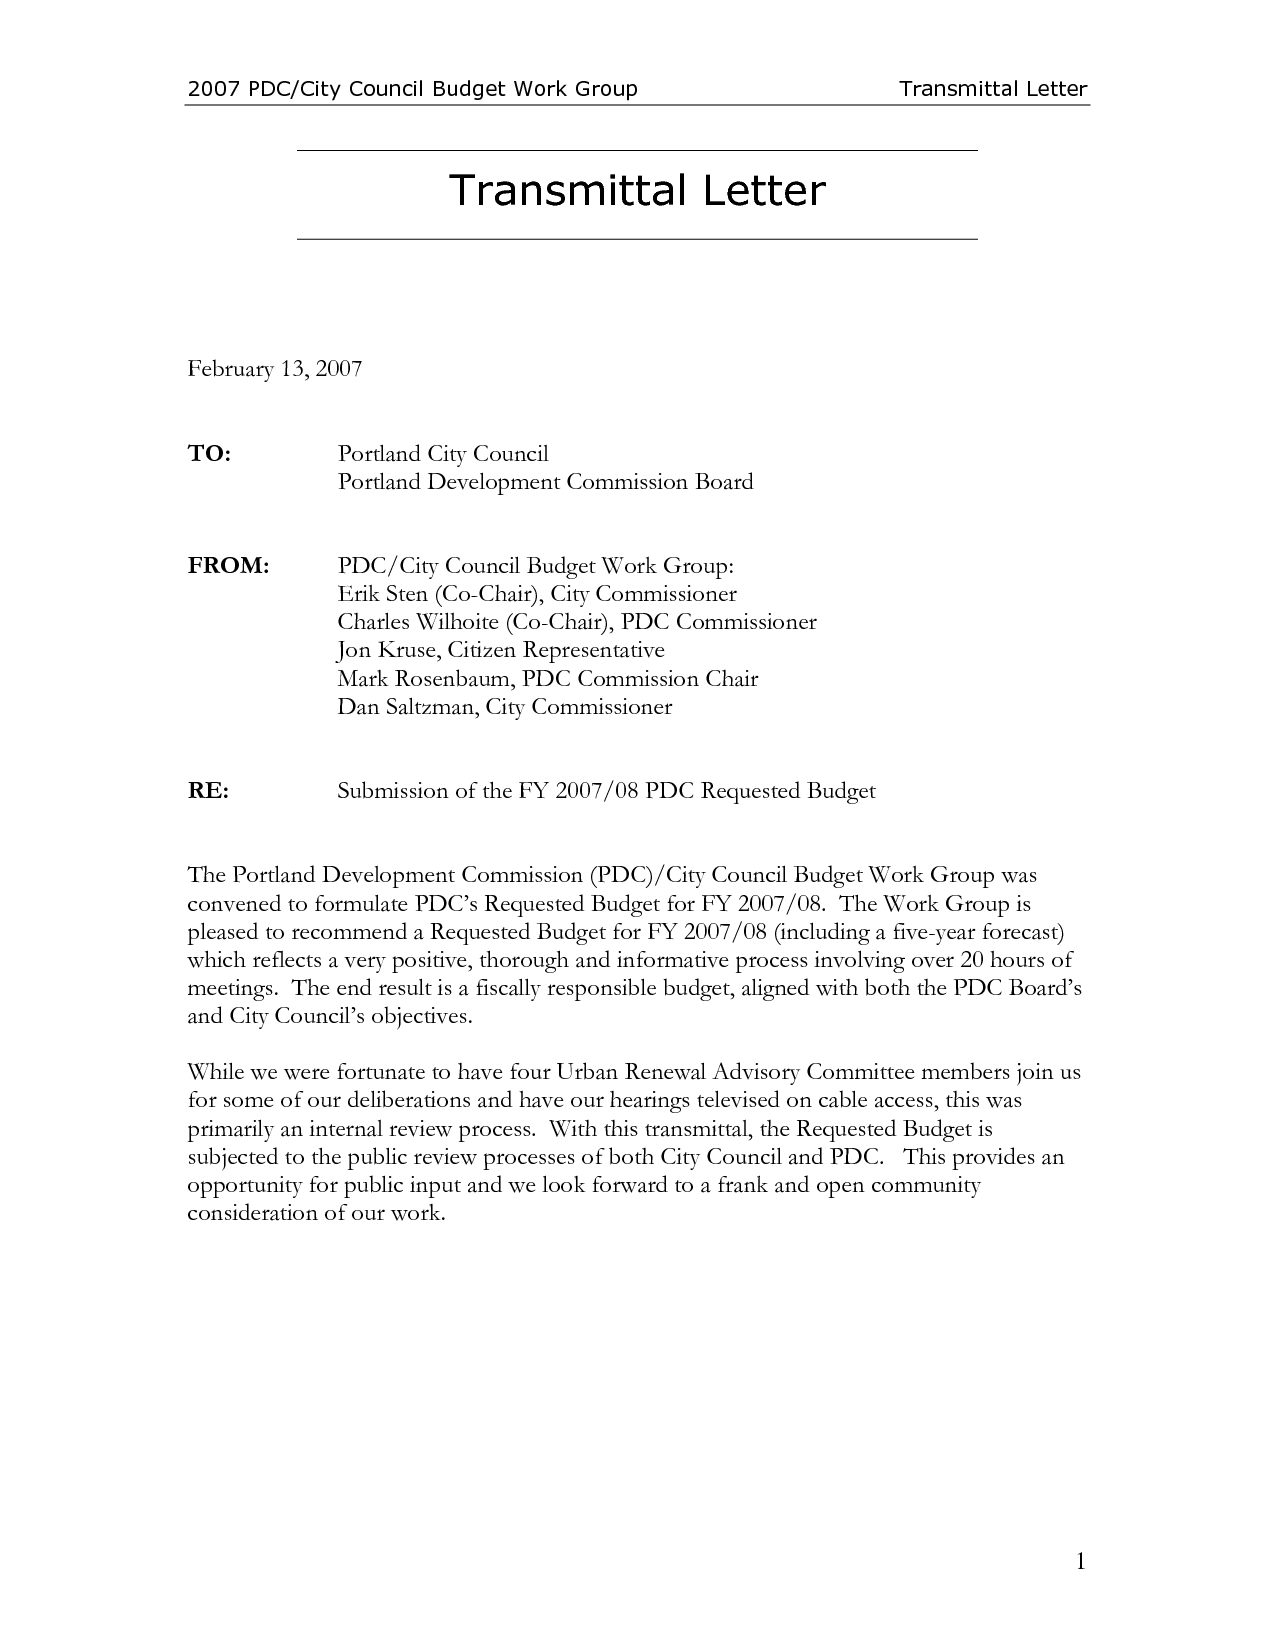 Letter Of Transmittal Template Construction - Sample thesisl Pdf Letter Transmittal Template Example